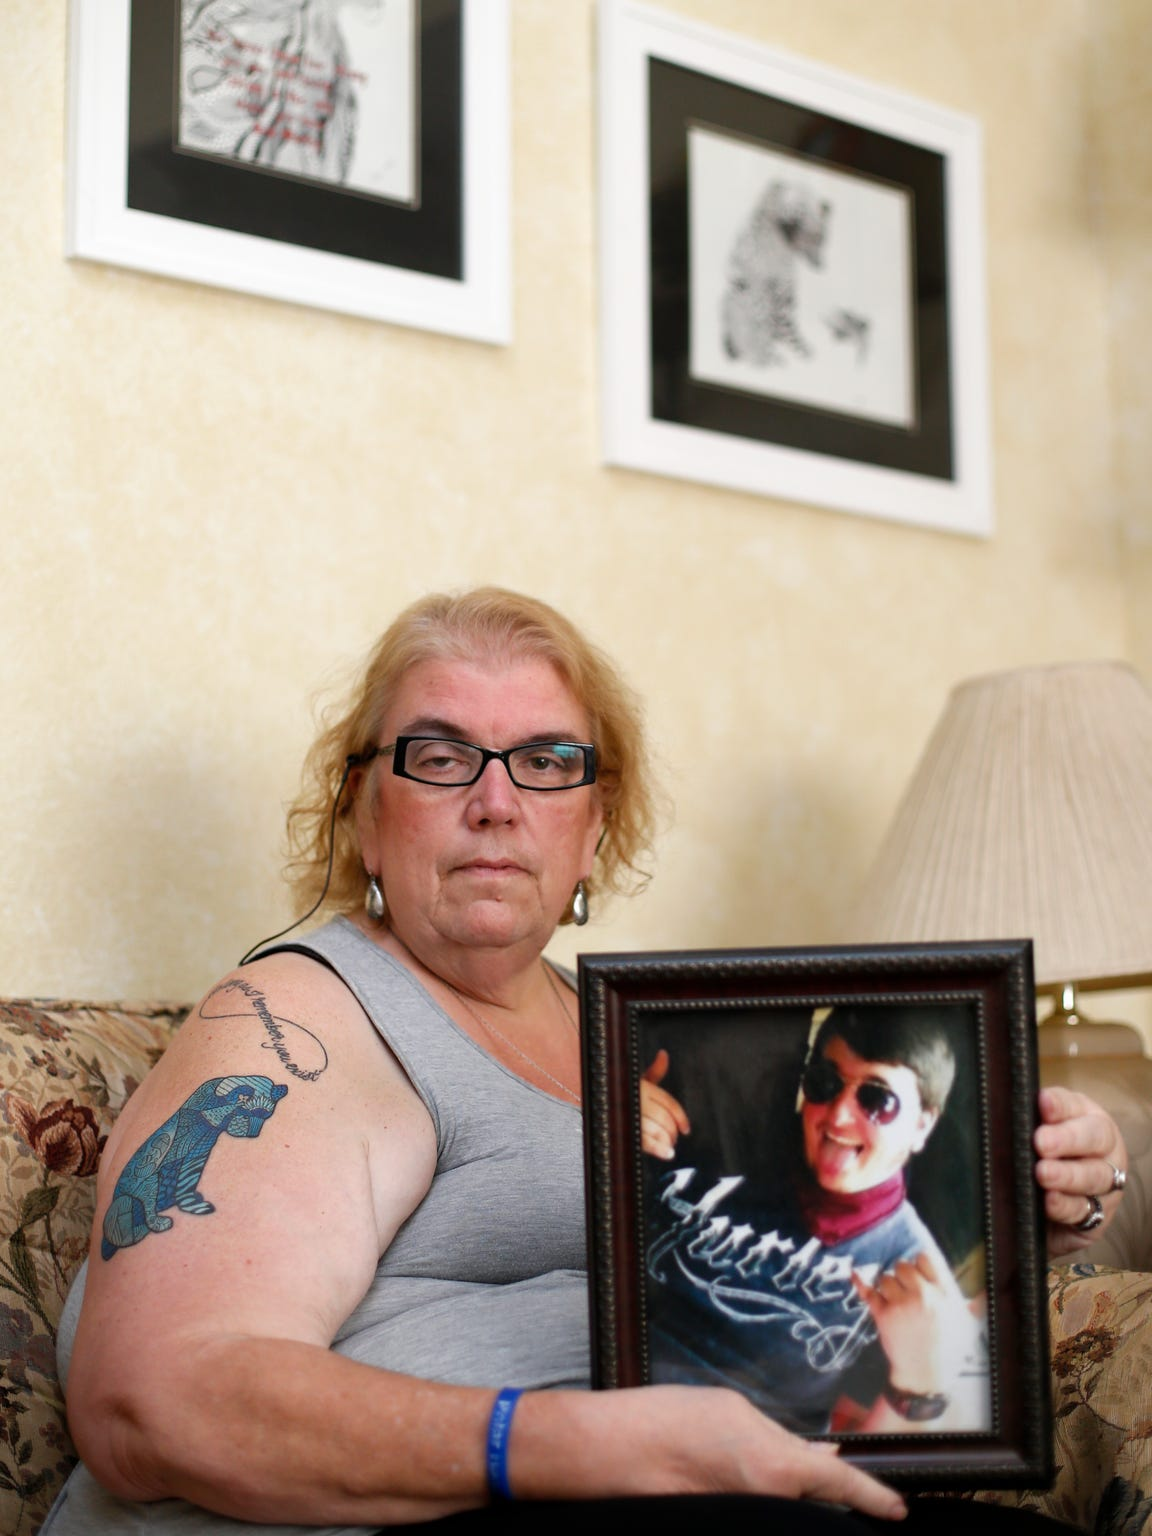 Cindi Byersmith's son Craig died in 2014 from heroin-related